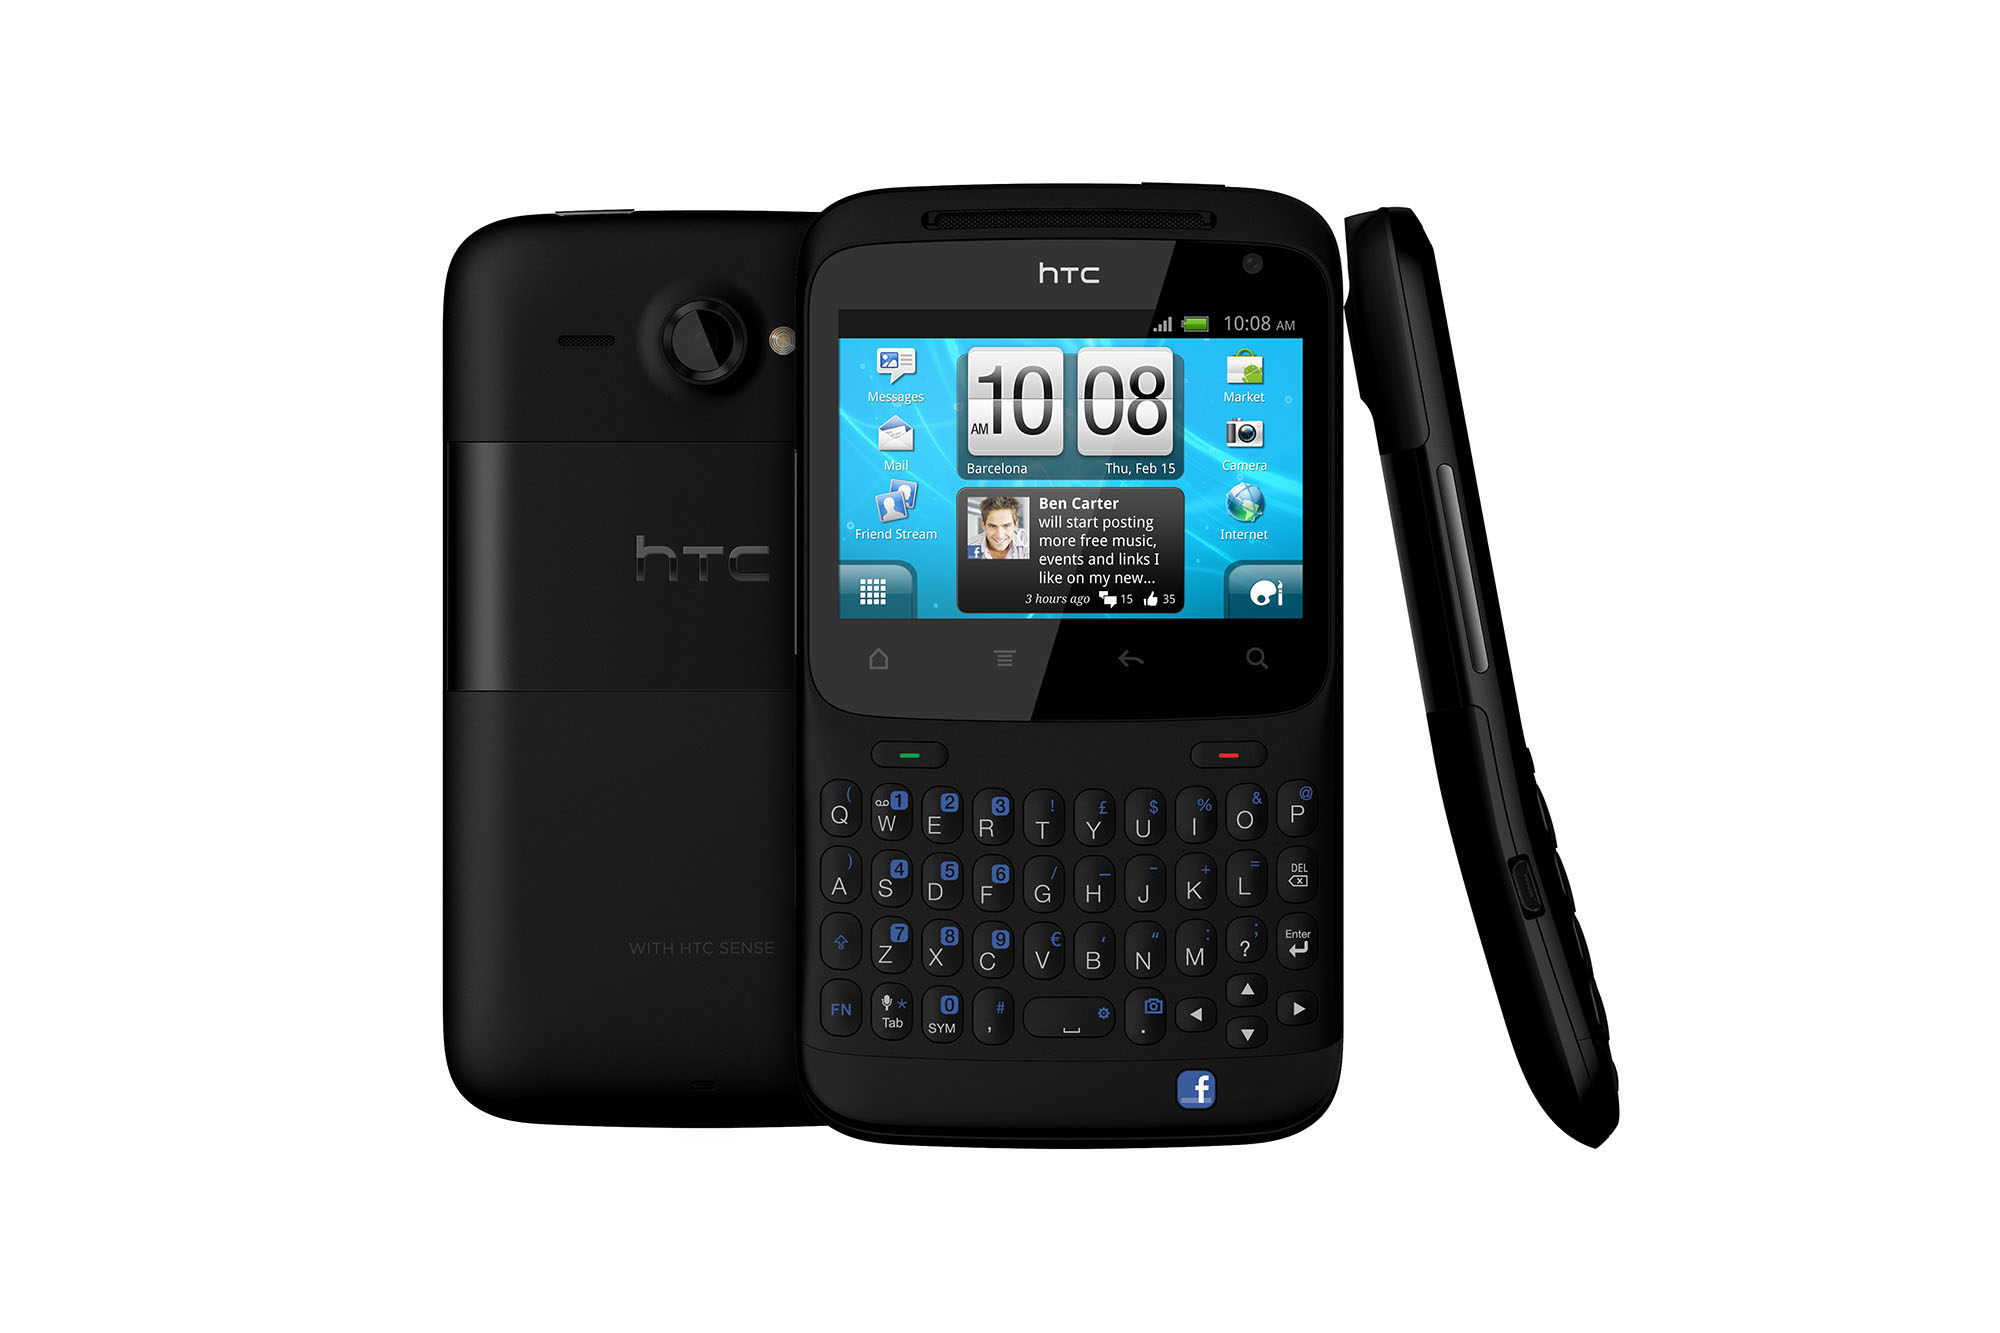 htc status android facebook smartphone unlocked gsm fair condition used cell phones cheap. Black Bedroom Furniture Sets. Home Design Ideas